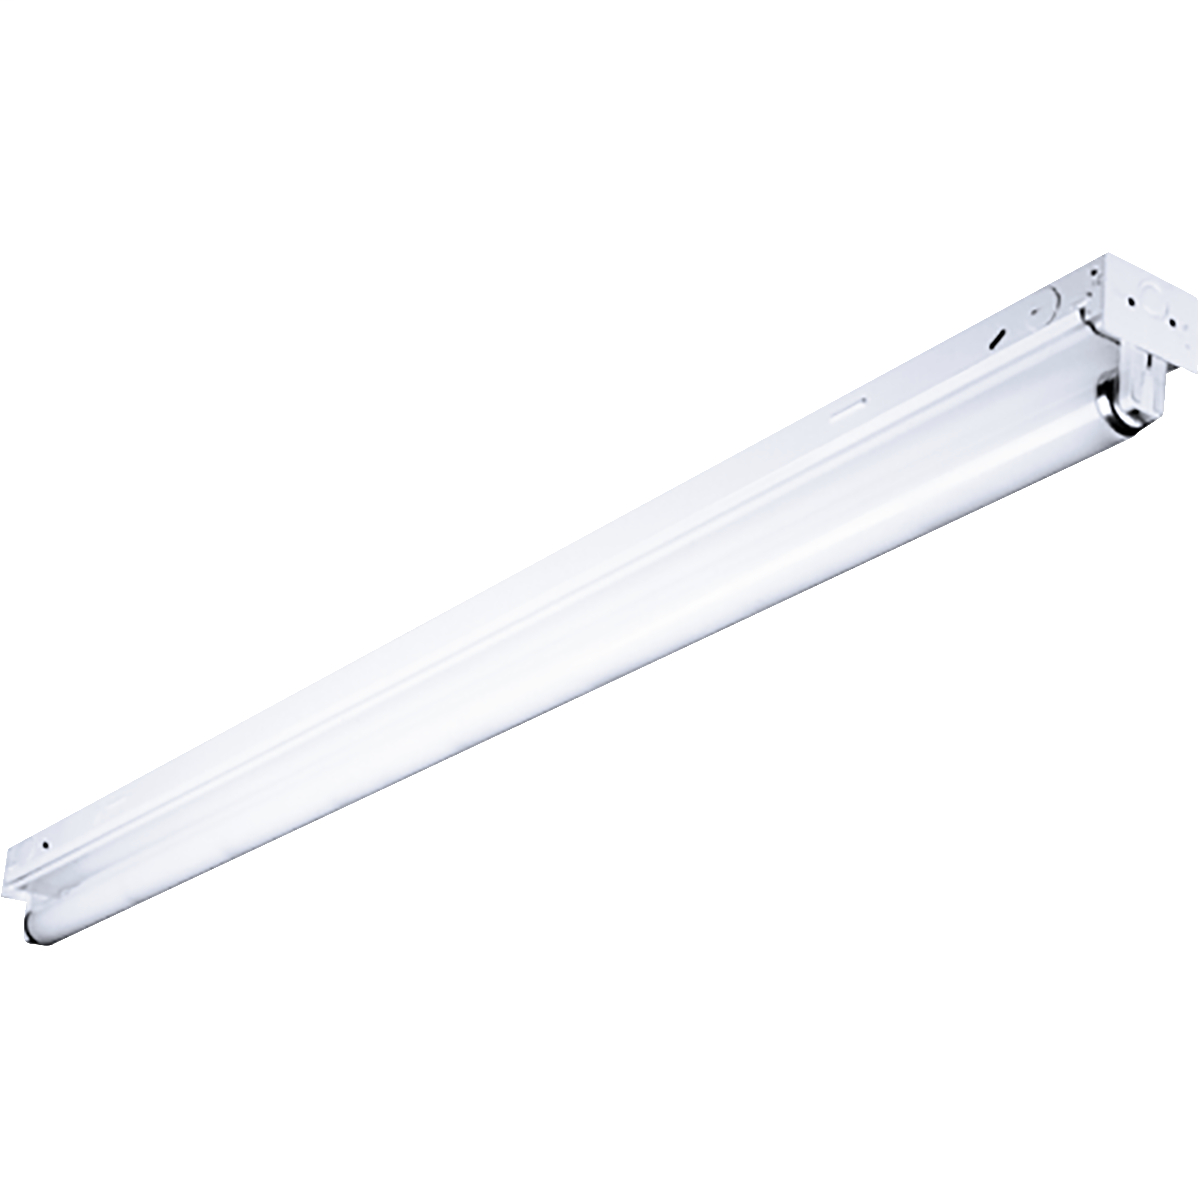 CH, 3 ft, Number of Lamps: 1, Lamp Type: 2 foot, T8: 25 watt fluorescent, Ballast Type: Electronic instant start T8, Voltage Rating: 120-277 VAC.